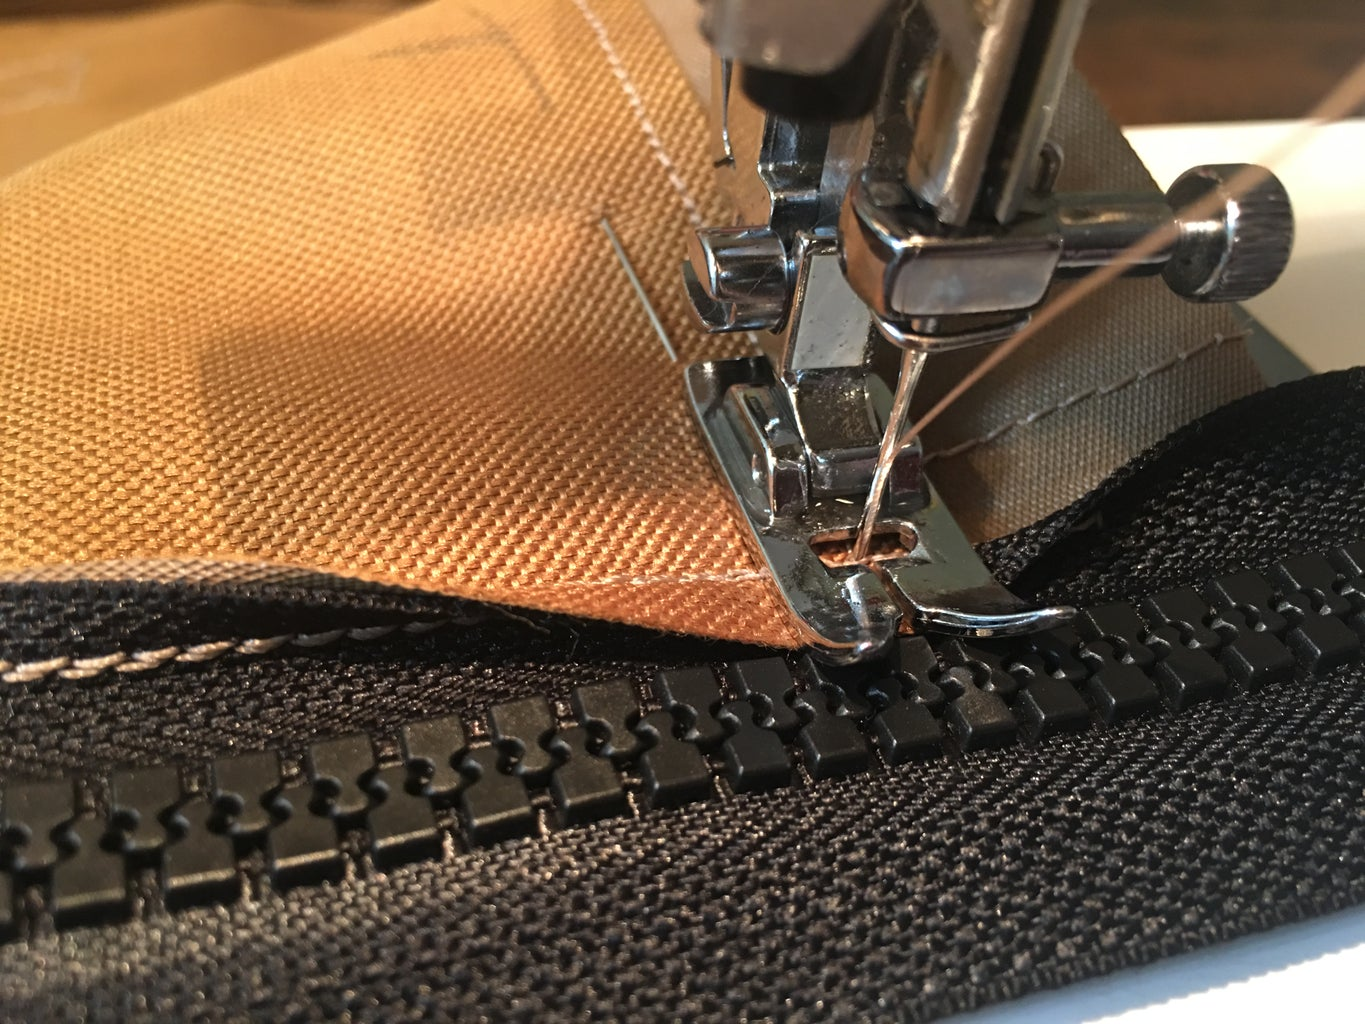 Sewing the Top to the Bag: